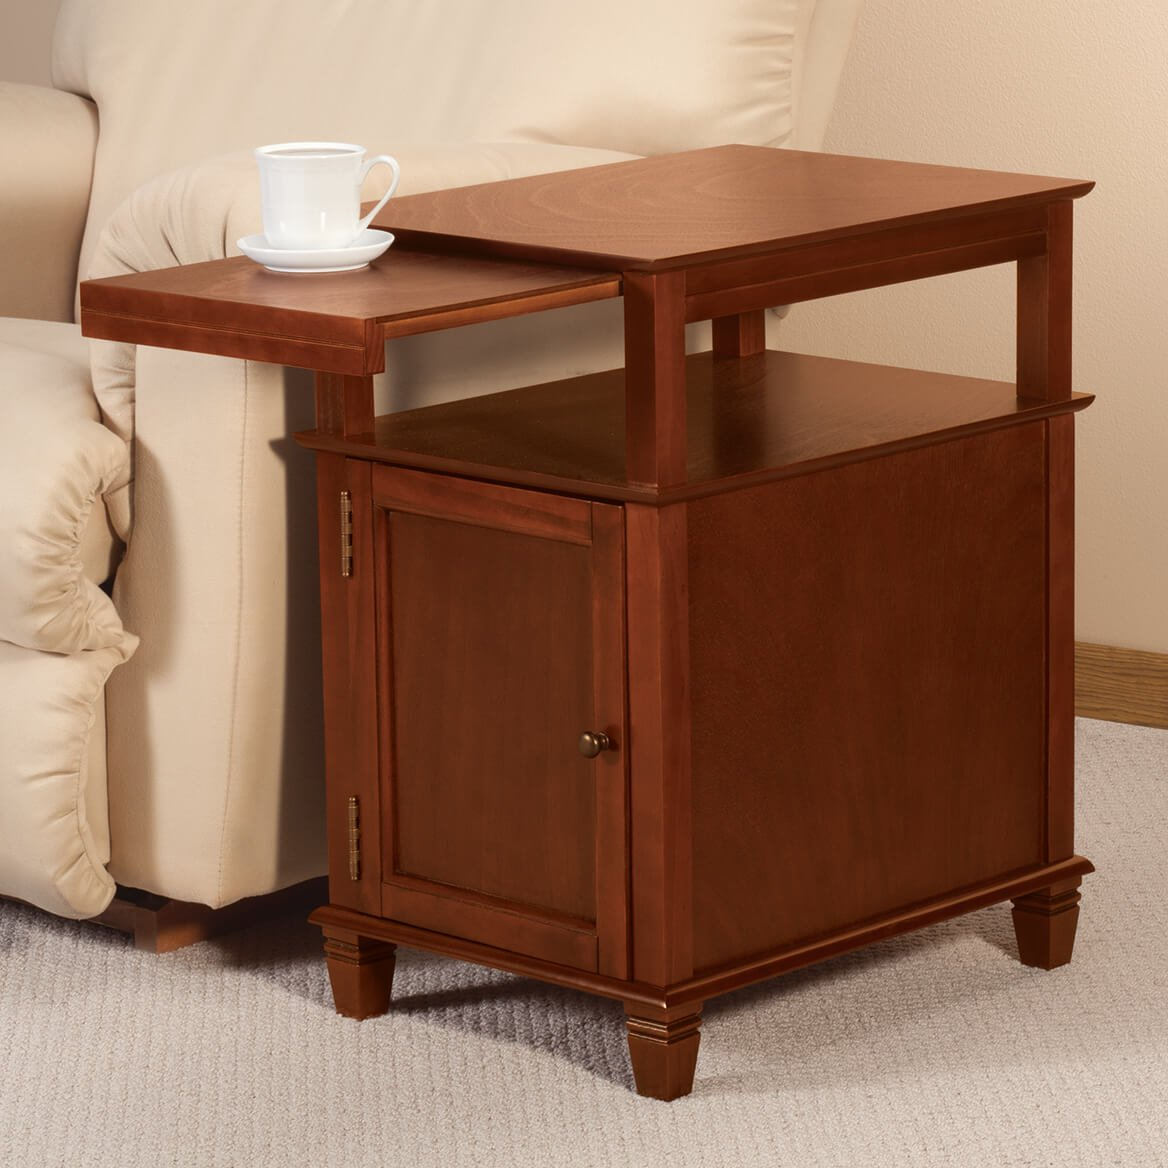 Easy Access Pullout Recliner Table